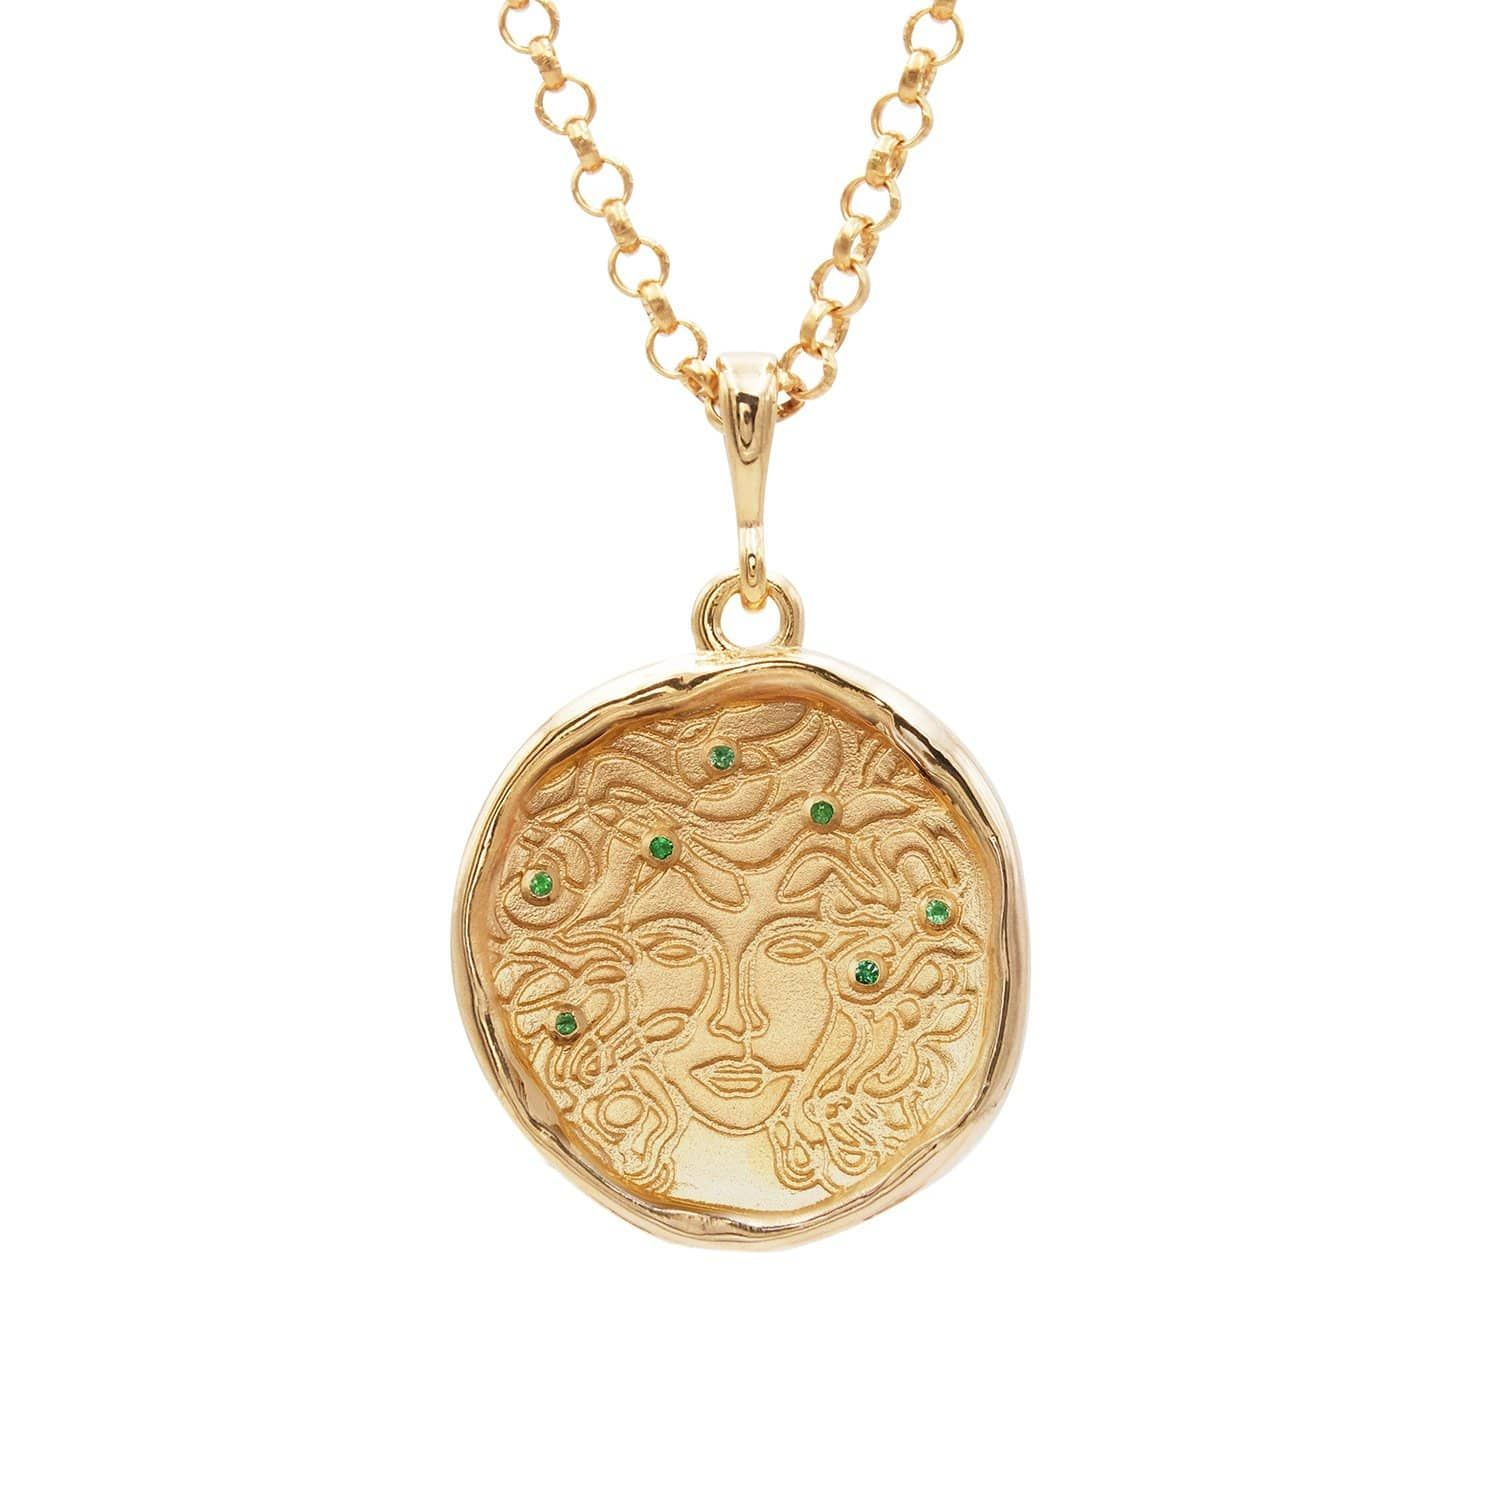 DIY 24Kt Gold Electroplated White Bone Carved Flower Pendant  Gold Plated Loop /& Bail Gold Electroformed Bone Pendant Carved Bone Pendant